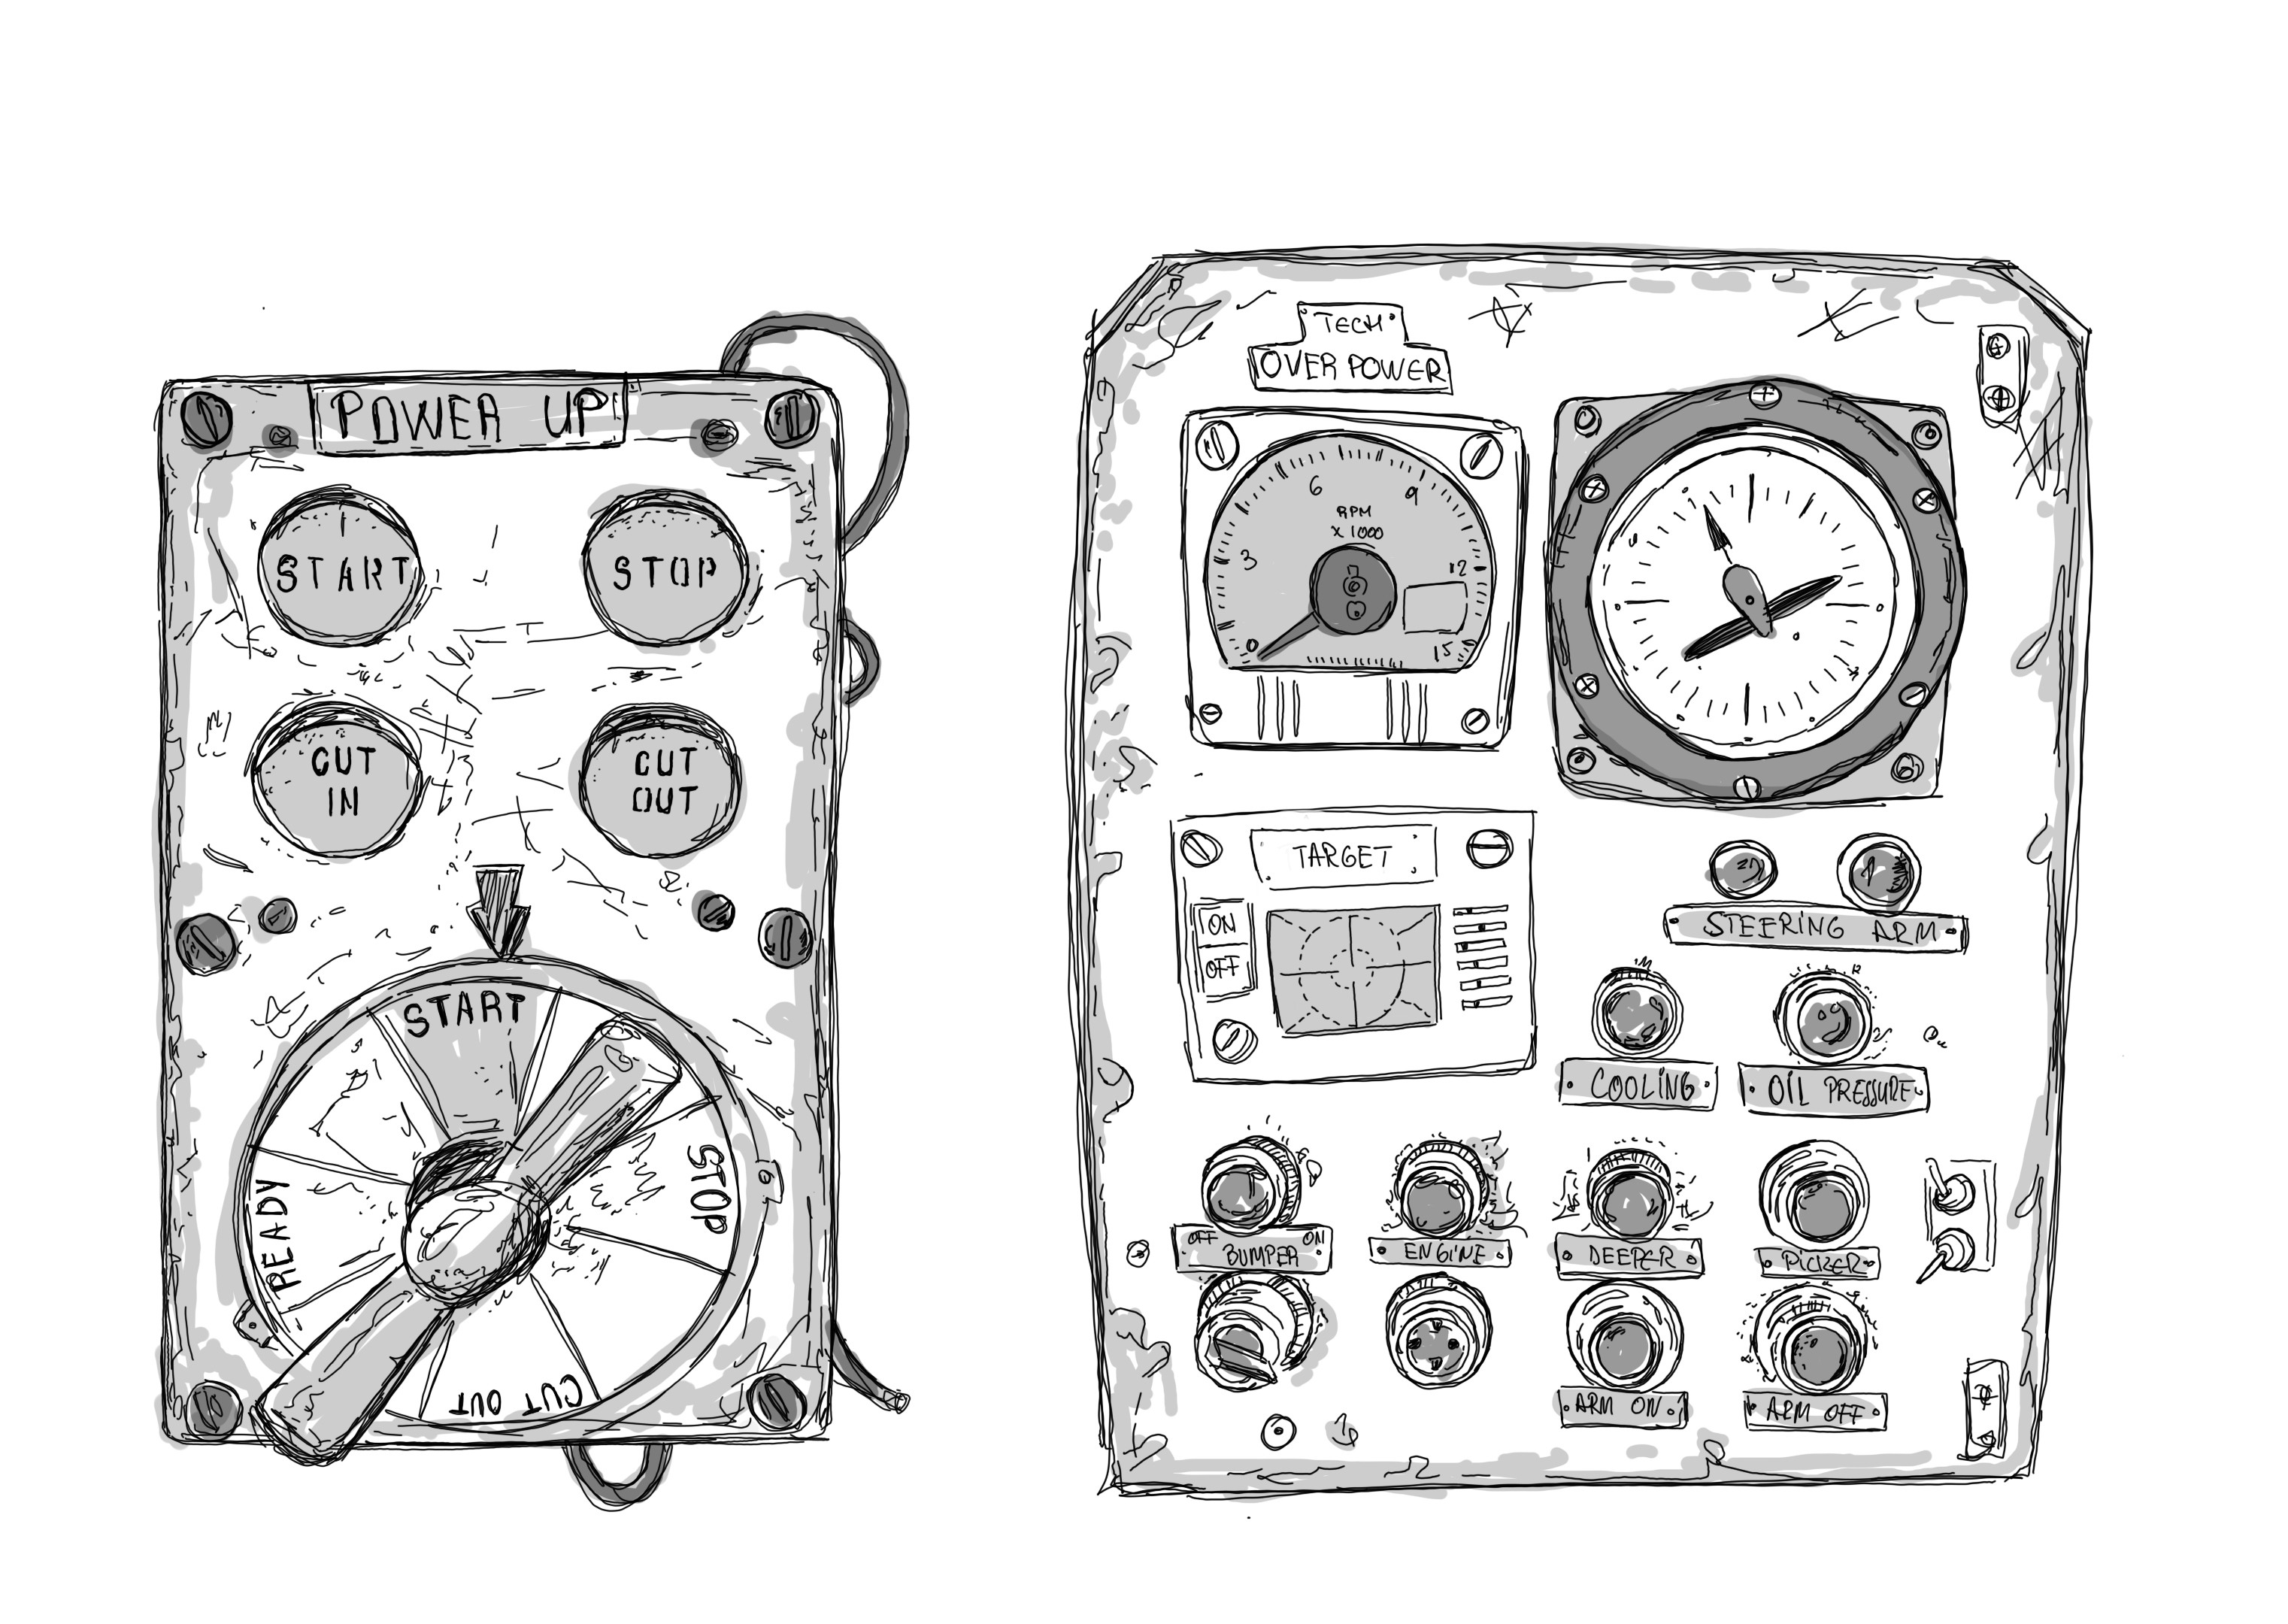 Sketch close-up, board control